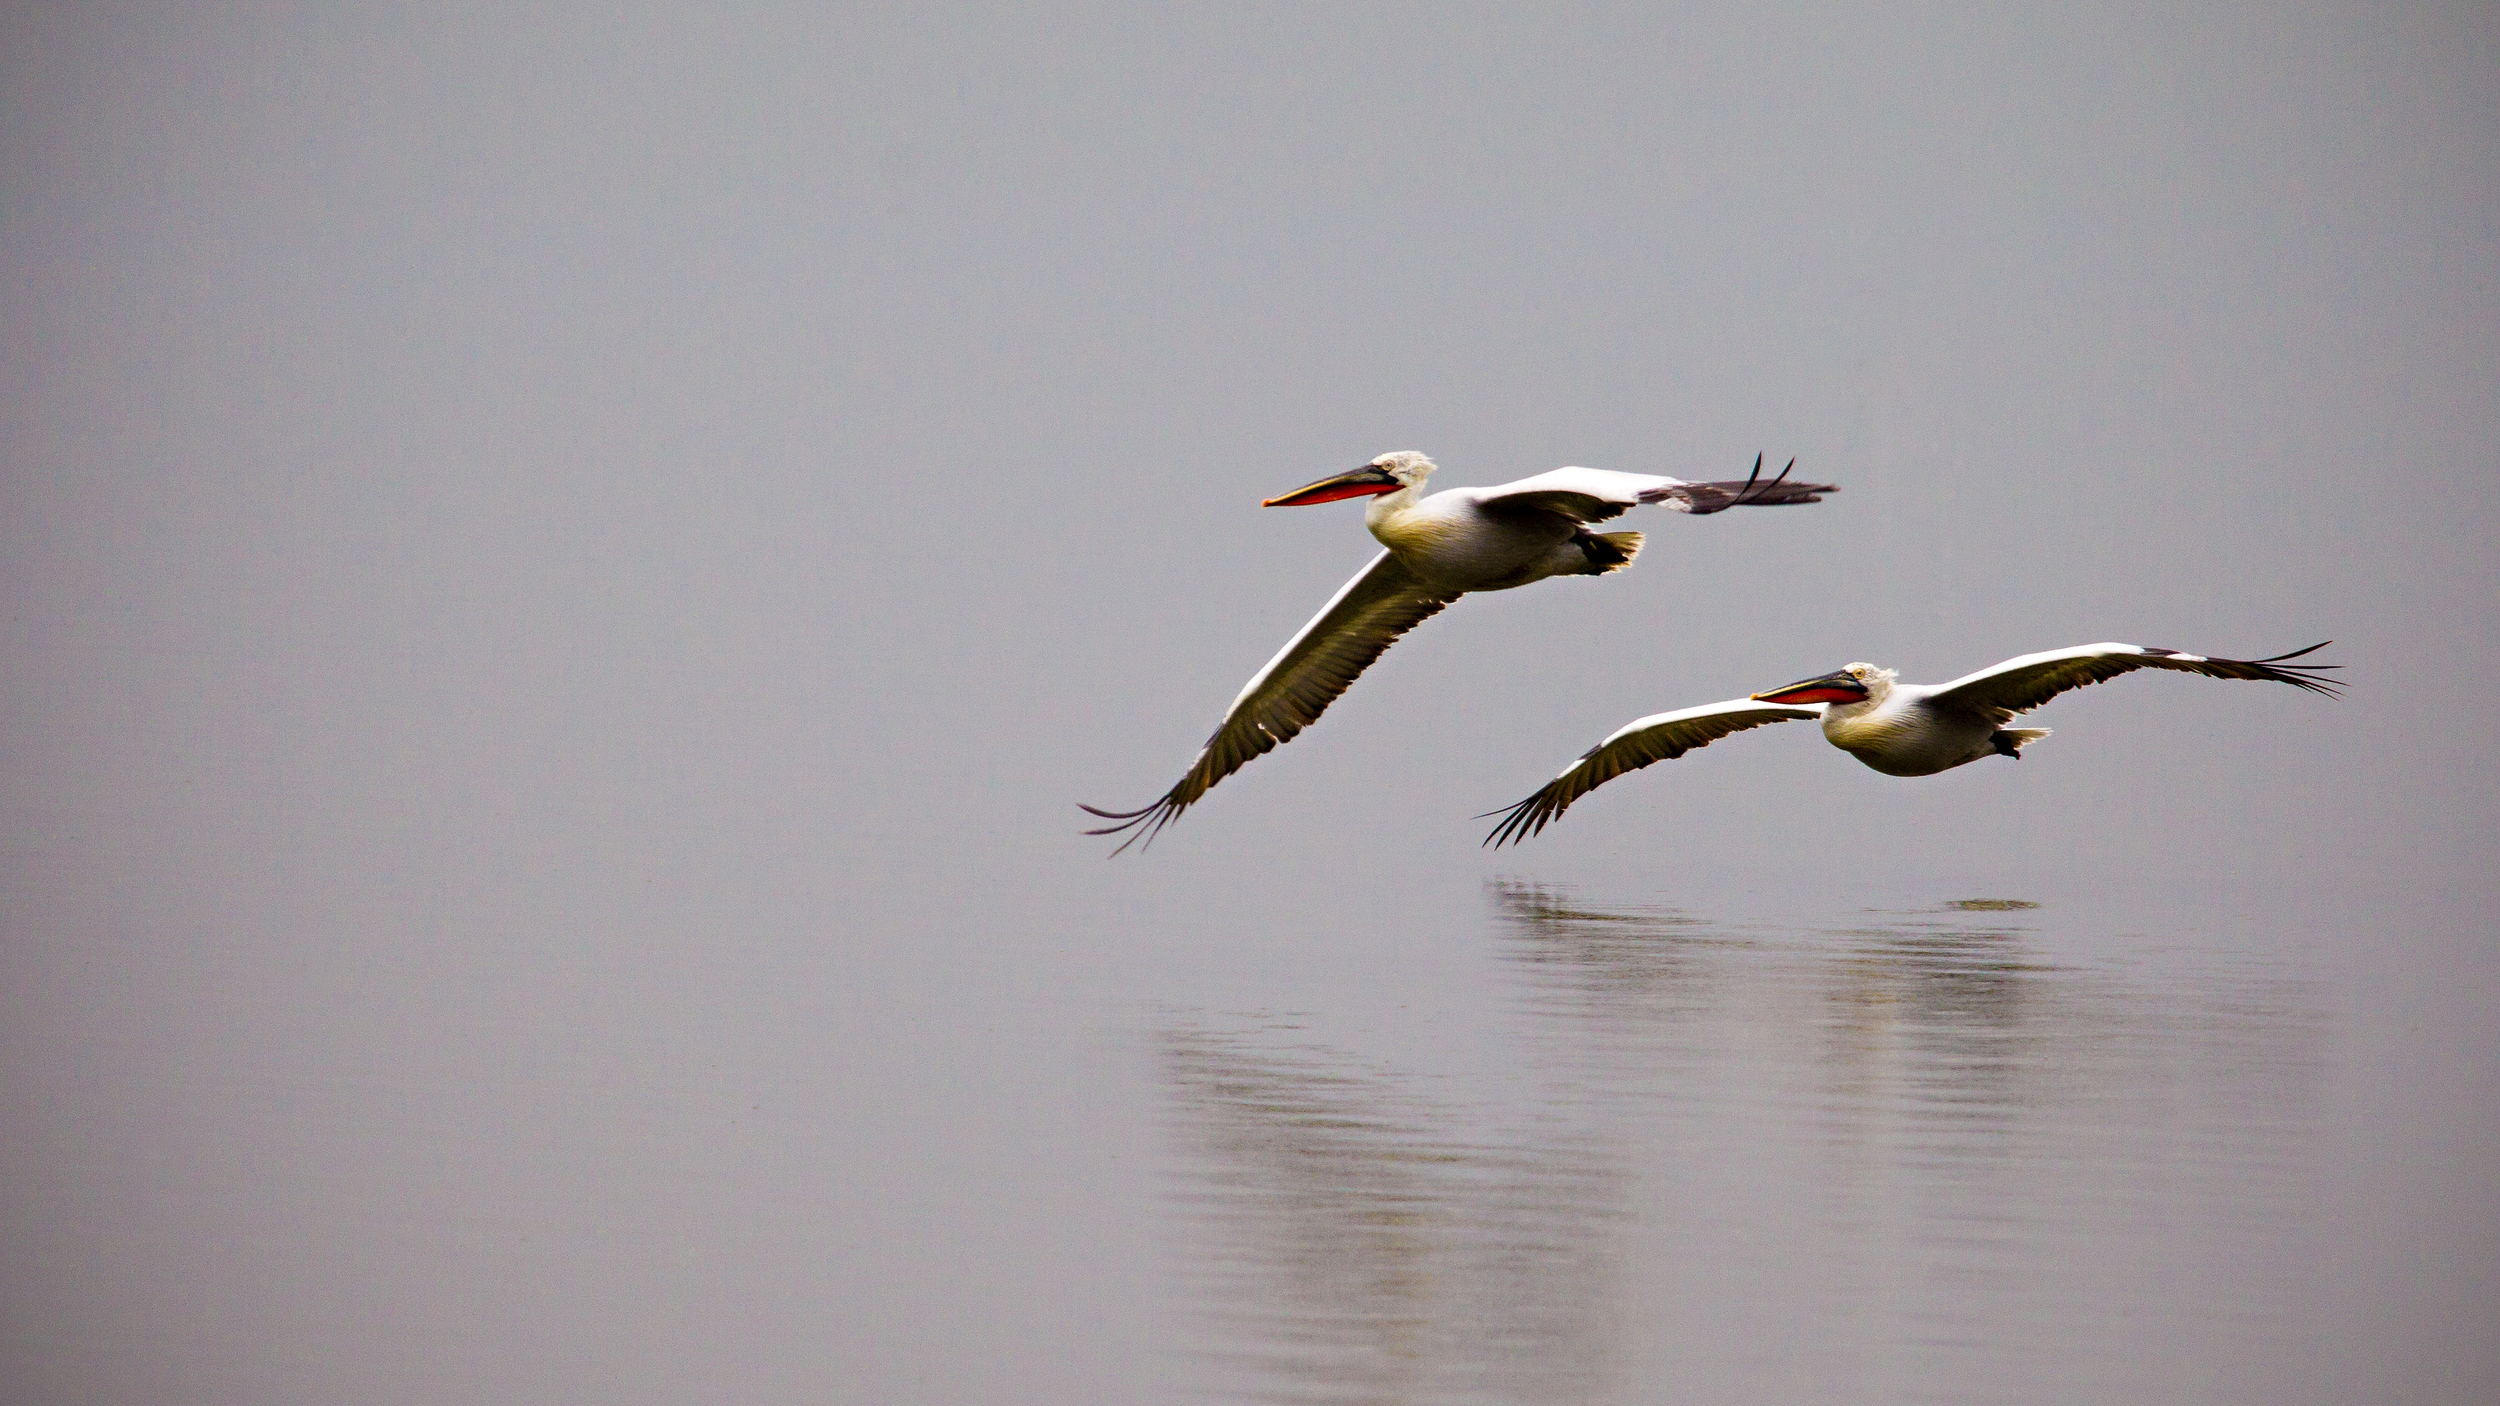 """Dalmatian Pelicans in flight photographed during one of our winter """"purely pelicans"""" wildlife photography weekend workshops at Lake Kerkini"""